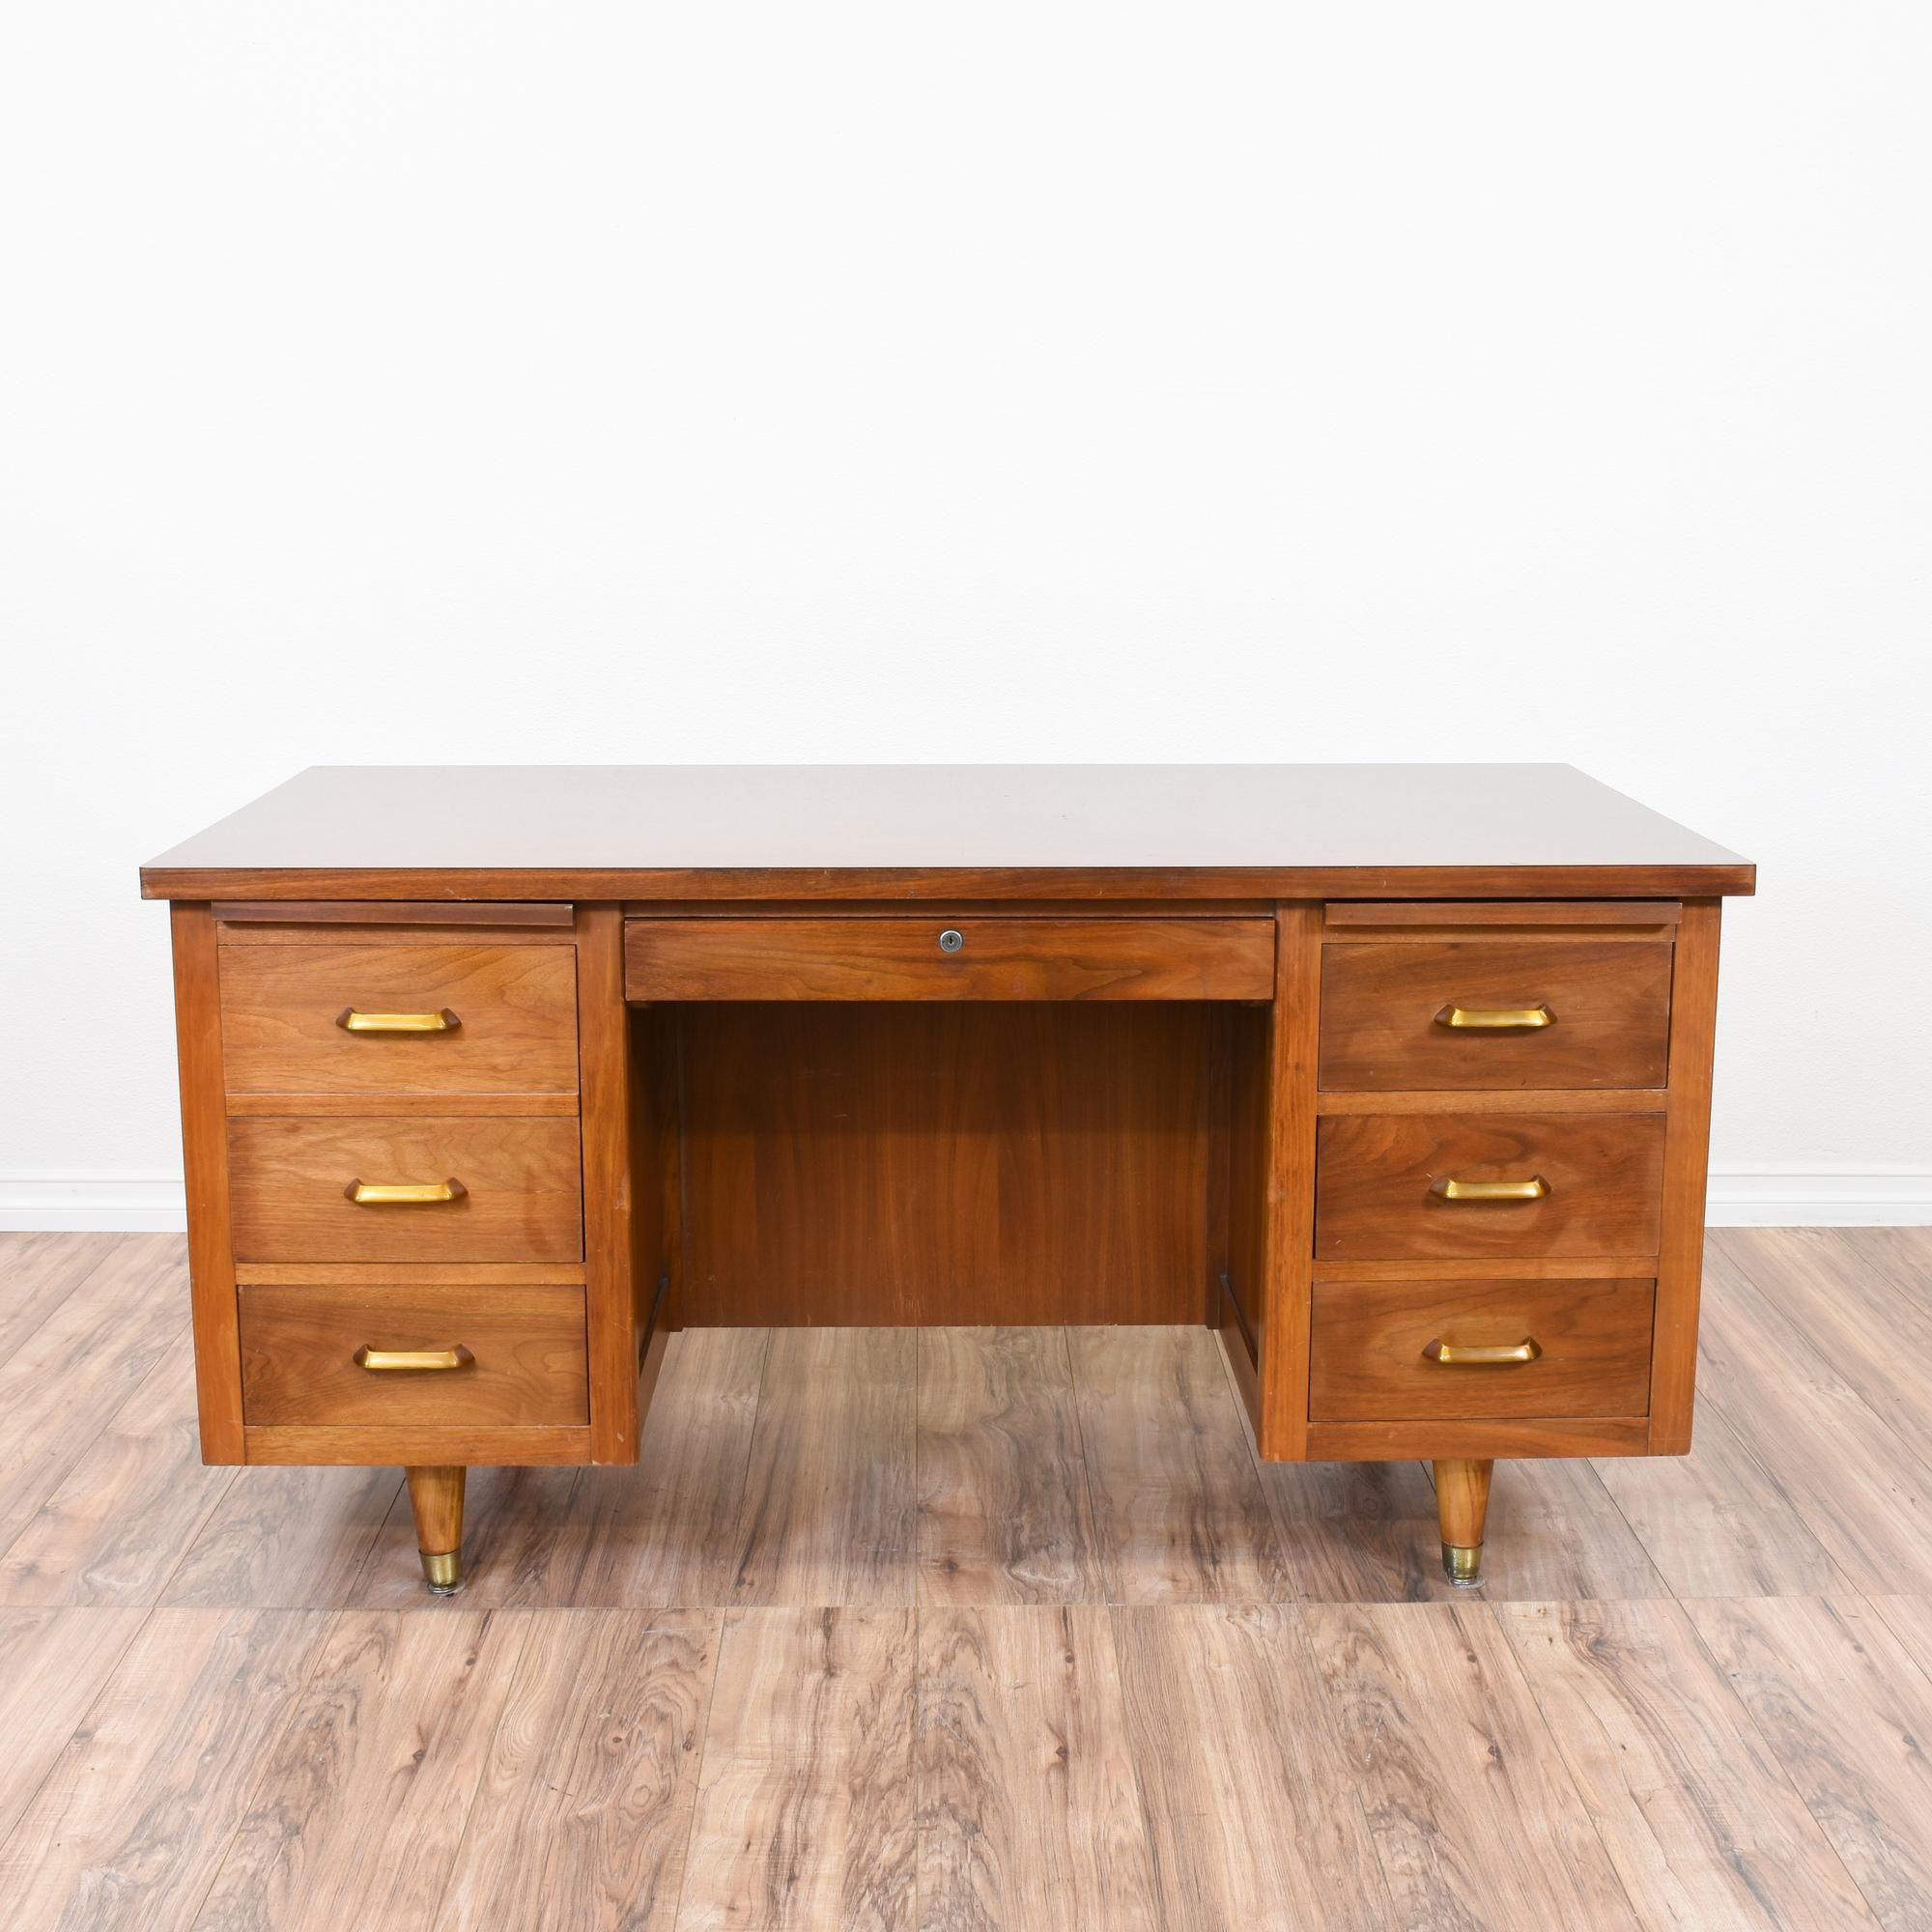 top anything a s wood my would laminate original golden desk in i just hold to up decided thecraftpatchblog makeover craft com it leave gem tanker room think didn the now faux t did vintage else because